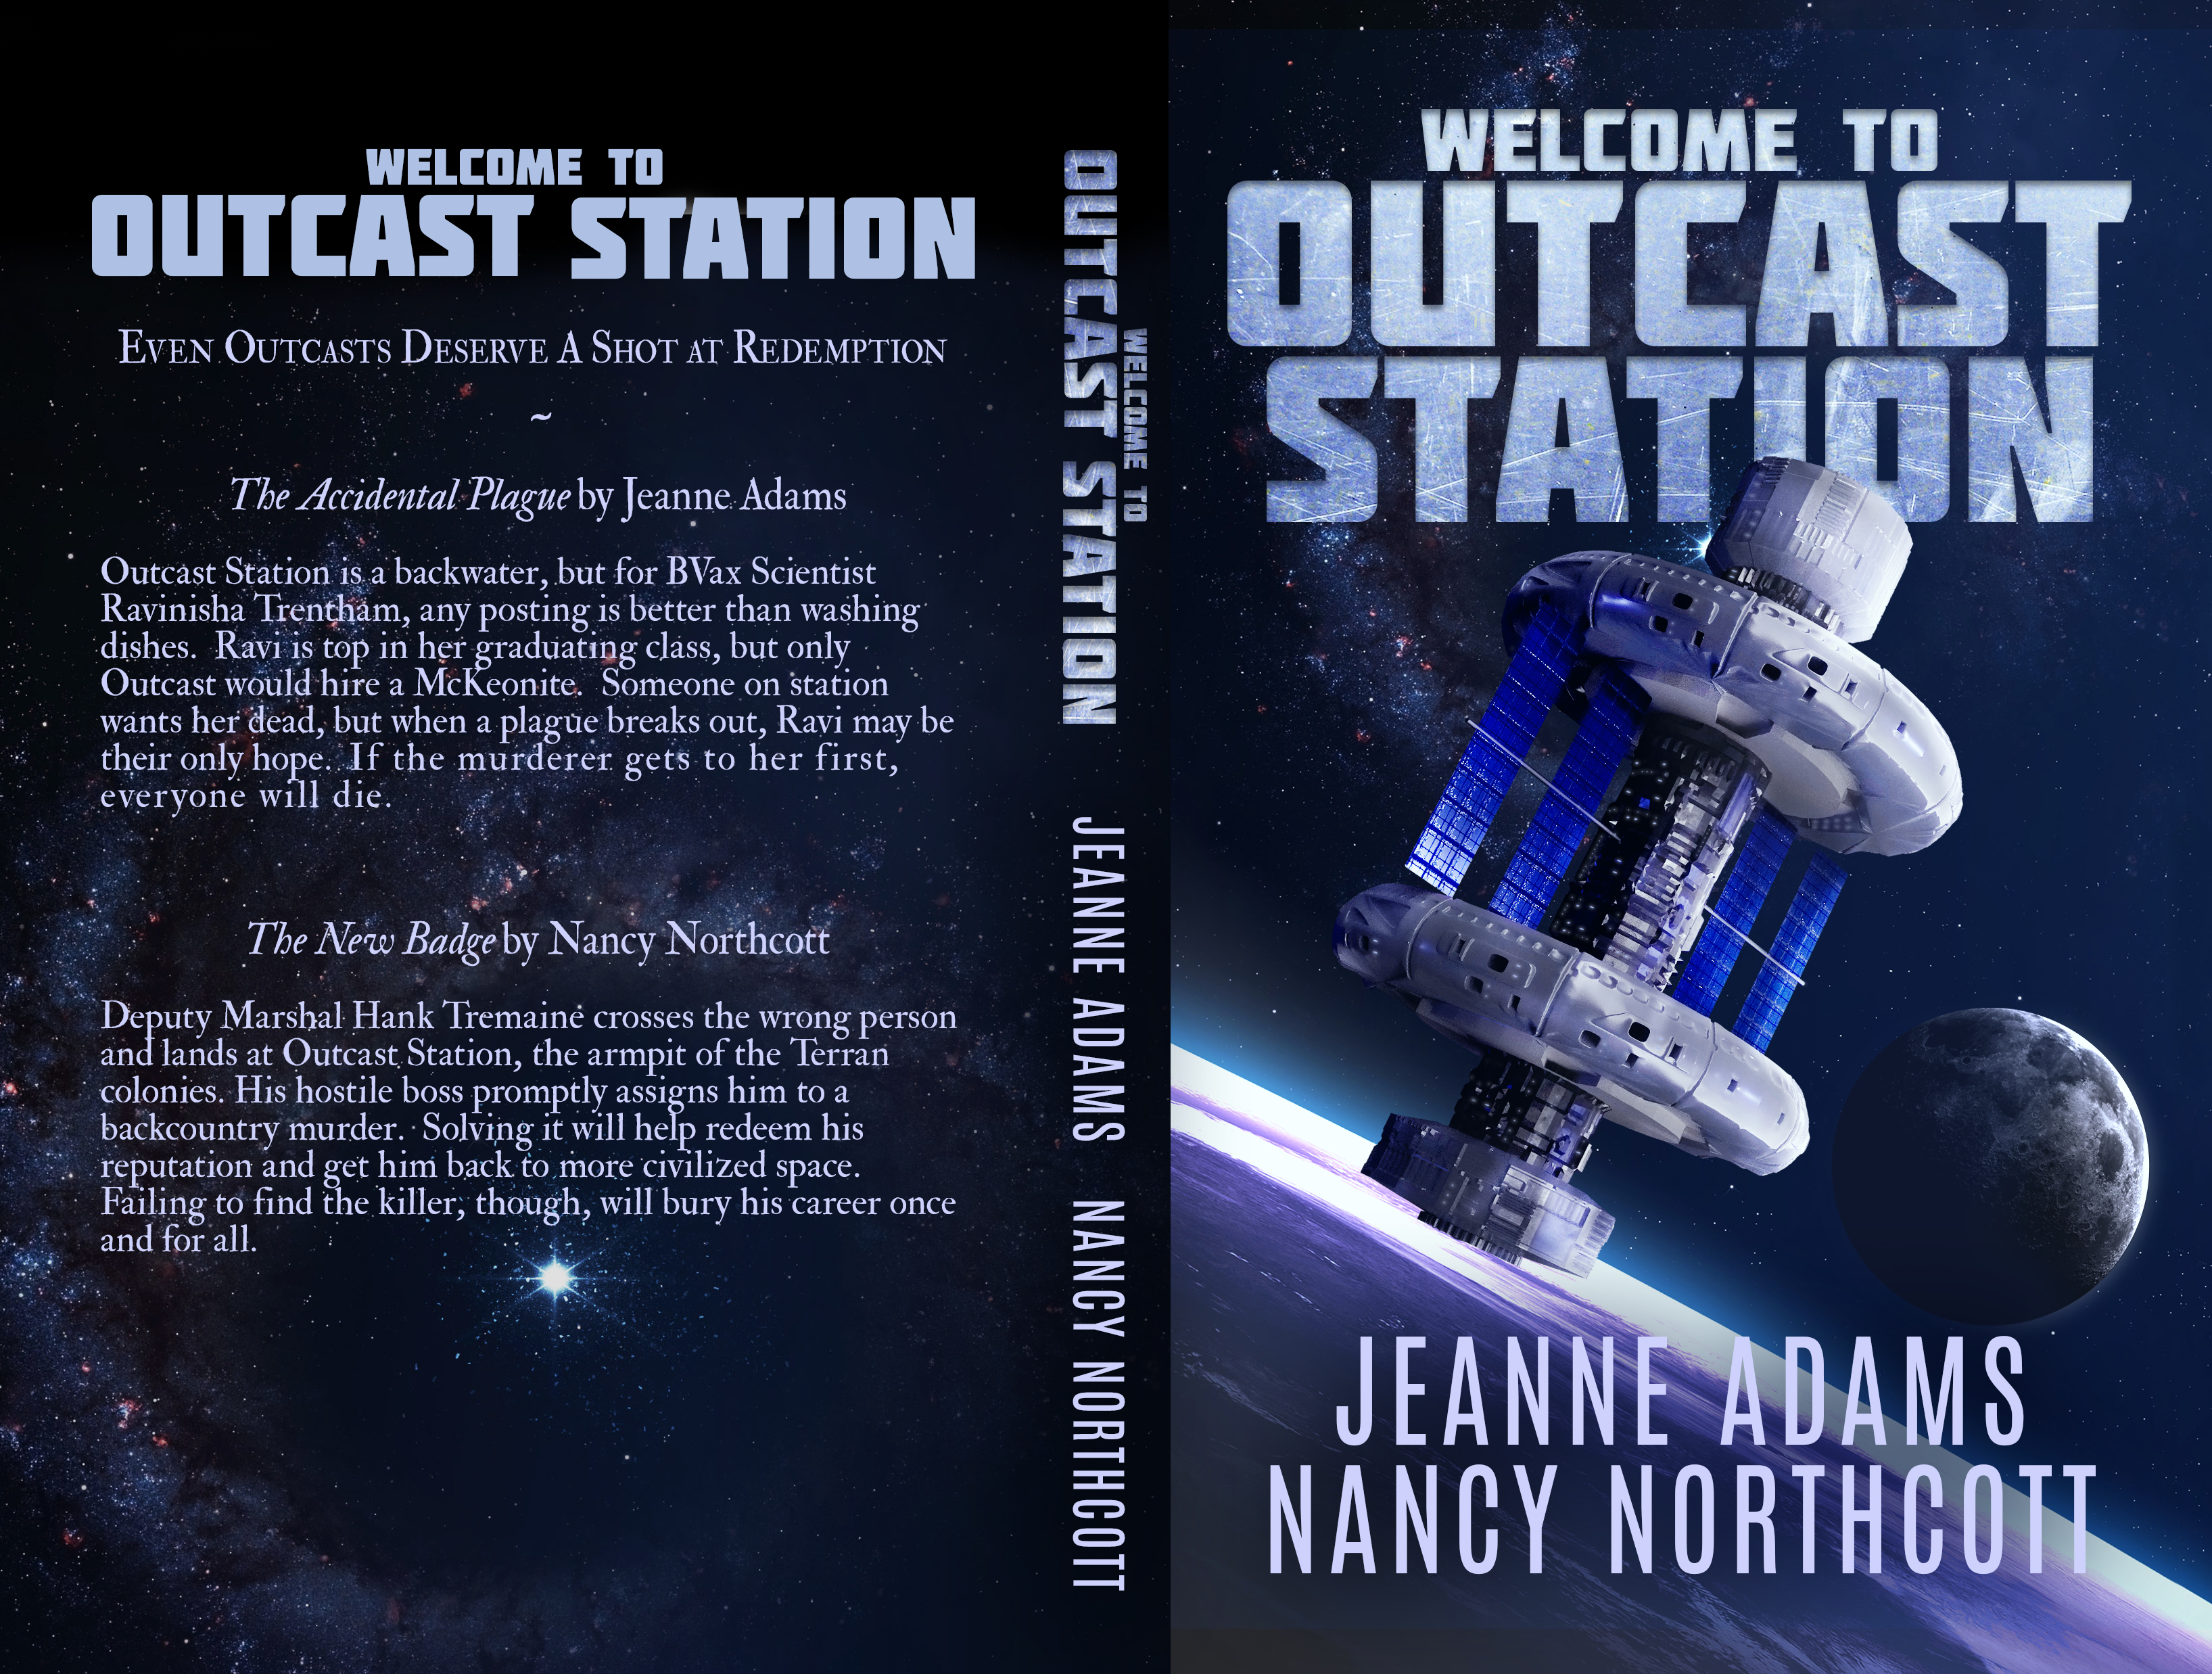 Welcome to Outcast Station full cover 5x8_BW_290